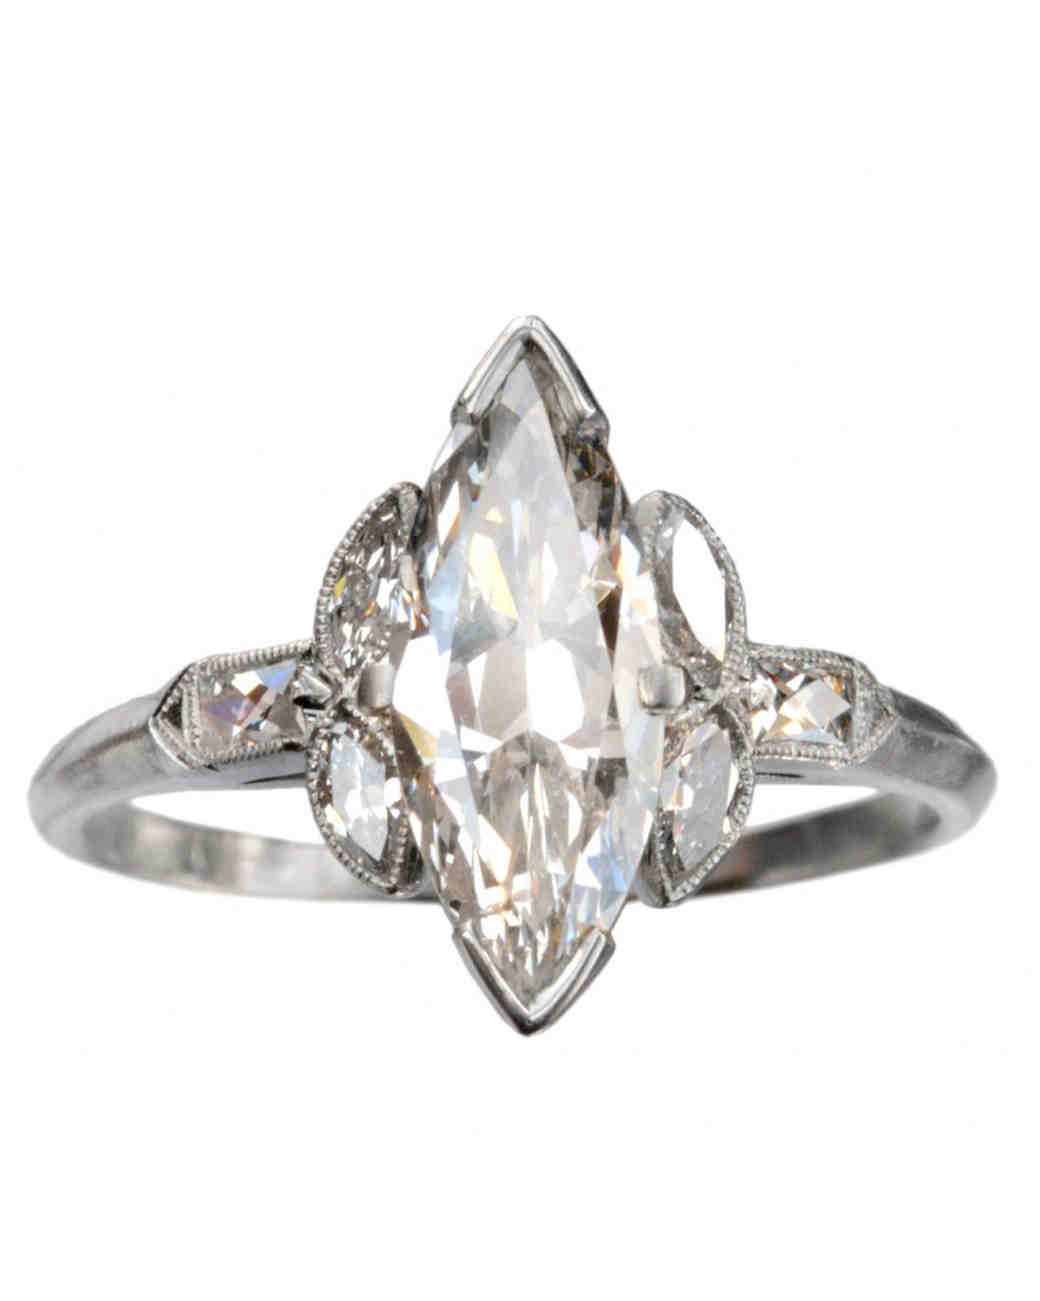 Erie Basin Marquise-Cut 1920s Art Deco Engagement Ring